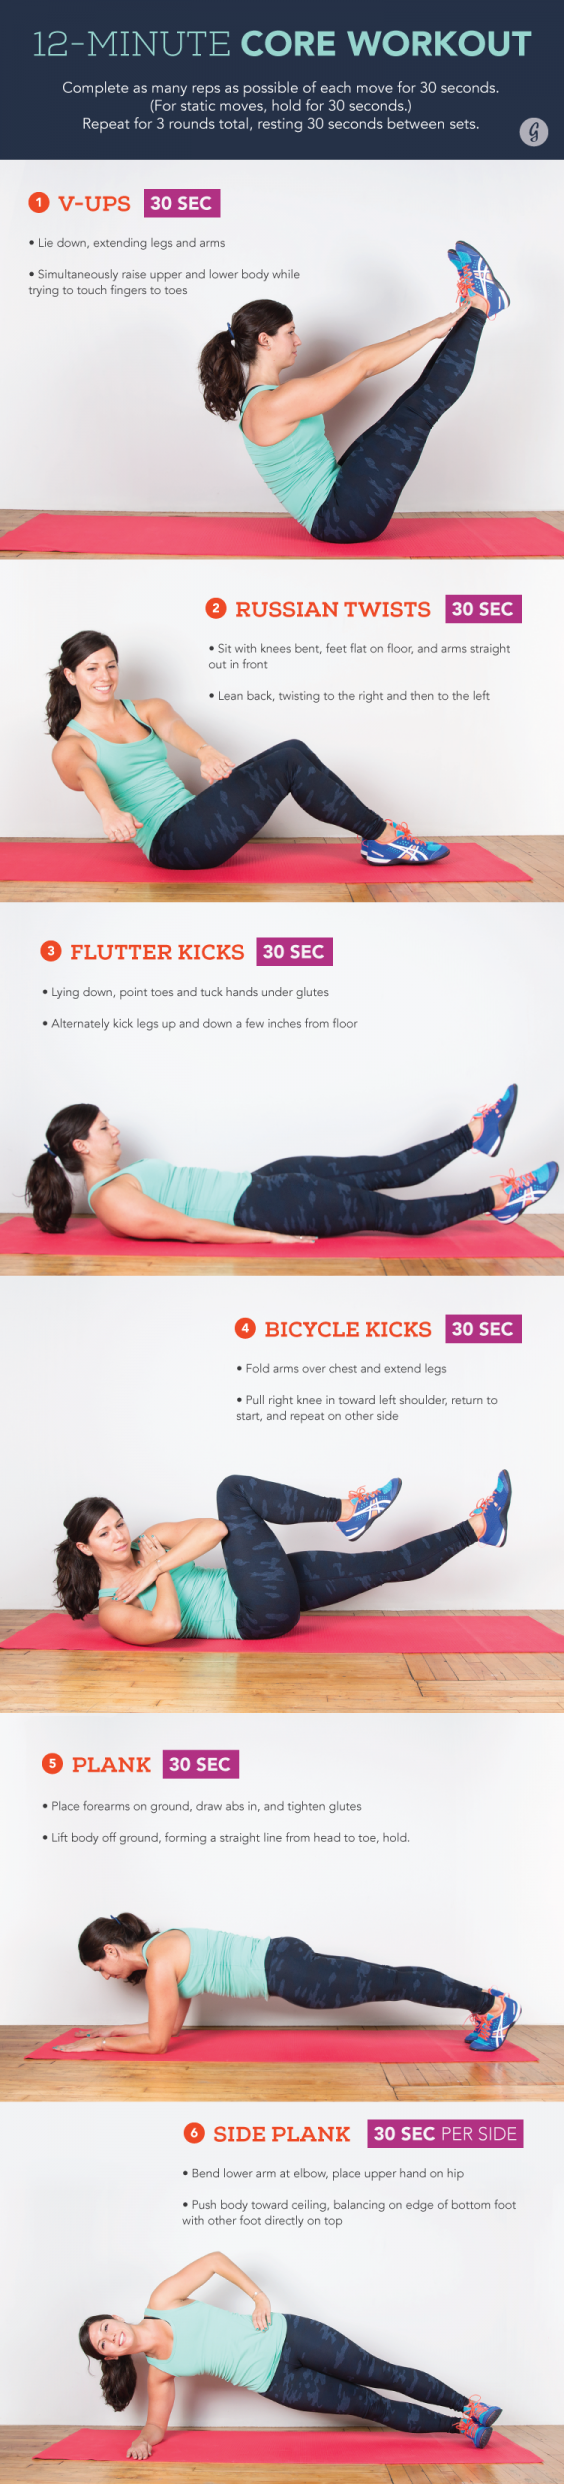 12 minutes core Workout